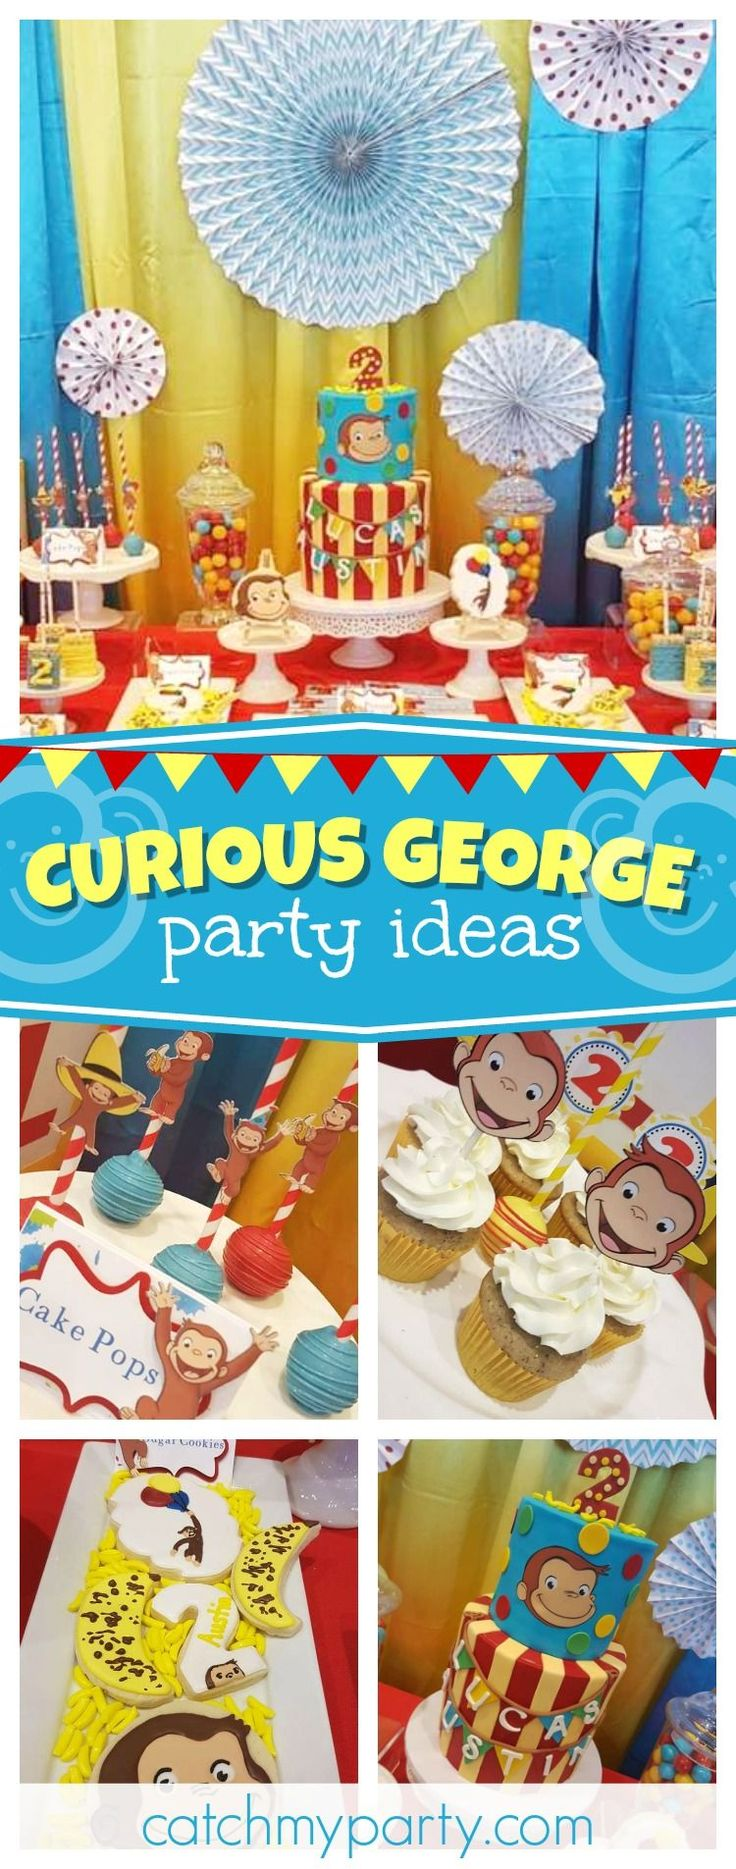 Check out this fun Curious George birthday party for twins!! The birthday cake is fantastic! See more paty ideas and share yours at CatchMYParty.com #partyideas #catchmyparty #curiousgeorge #twins